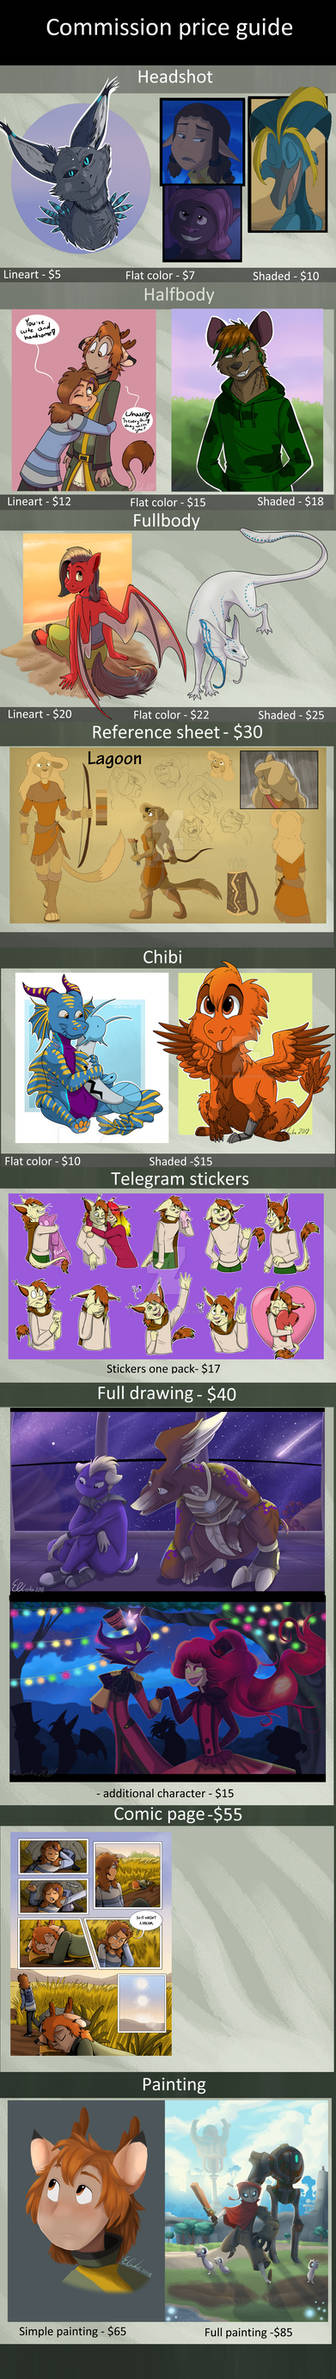 Commission price guide 2019 (open) by Eveeka